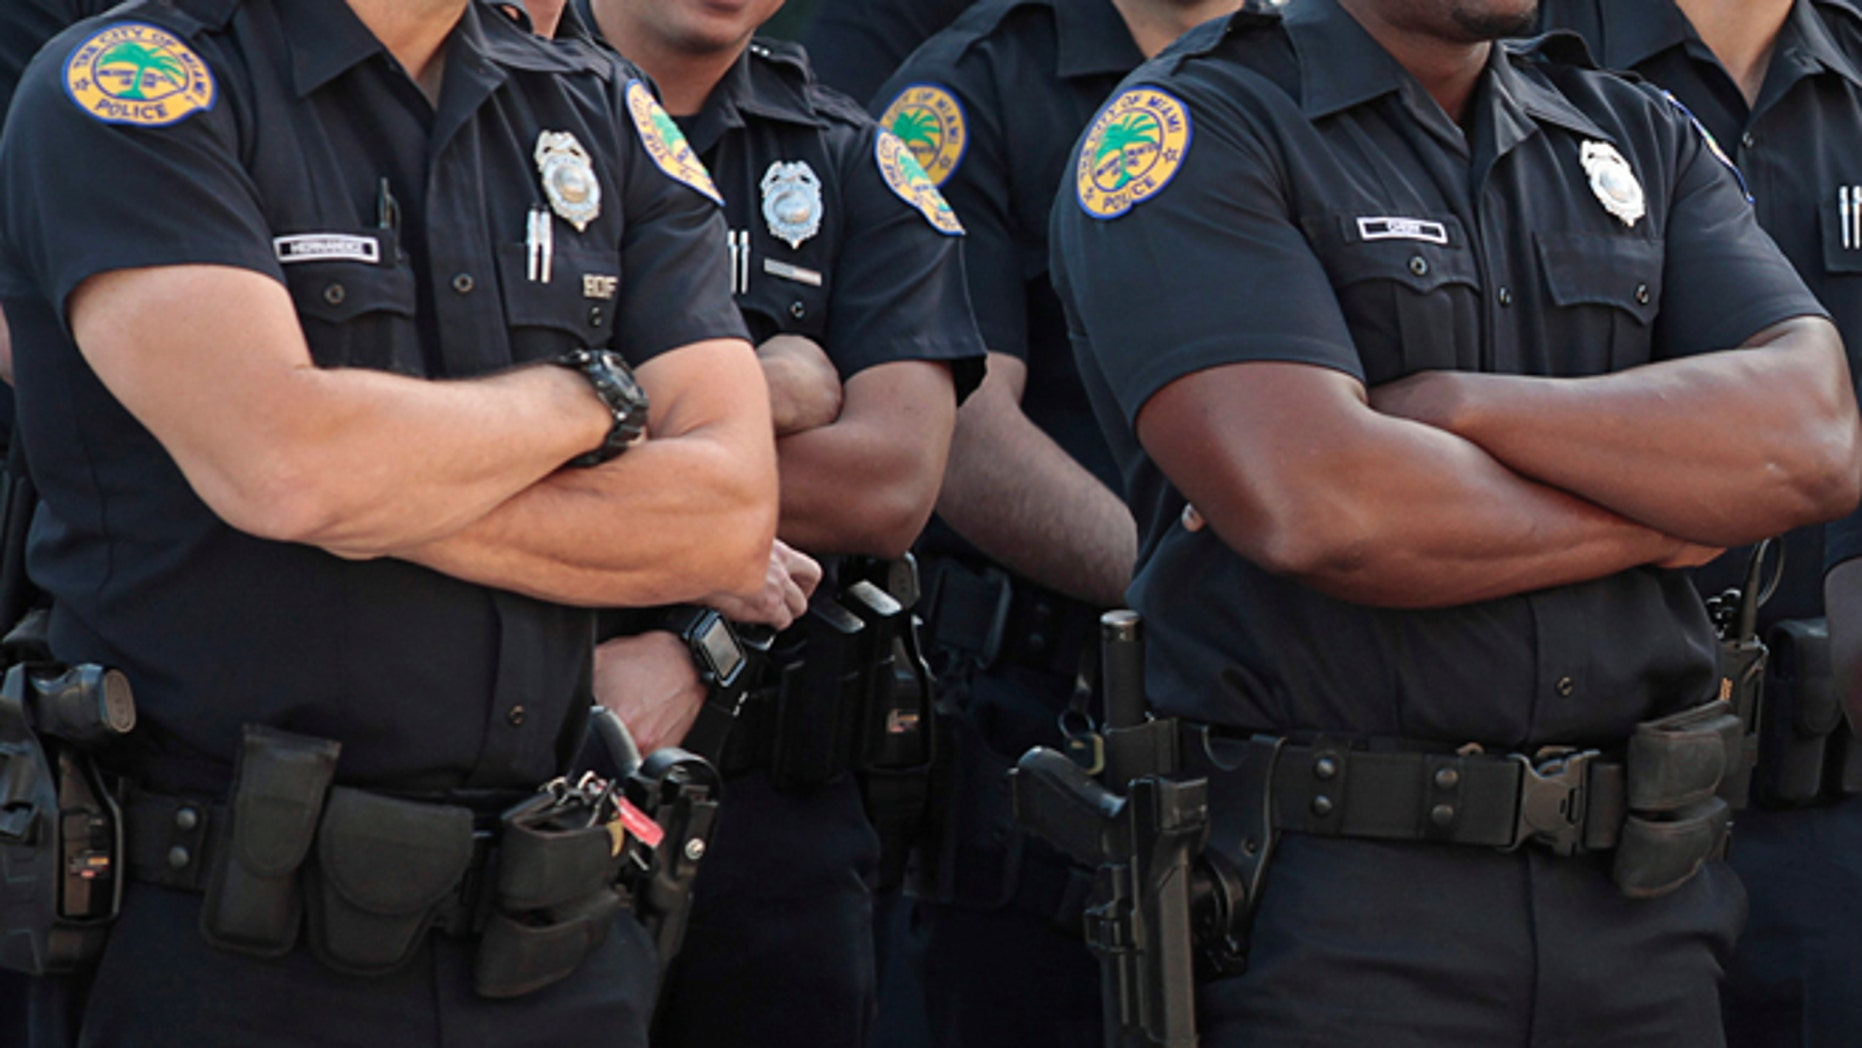 Miami police officers receive instructions from a commanding officer.